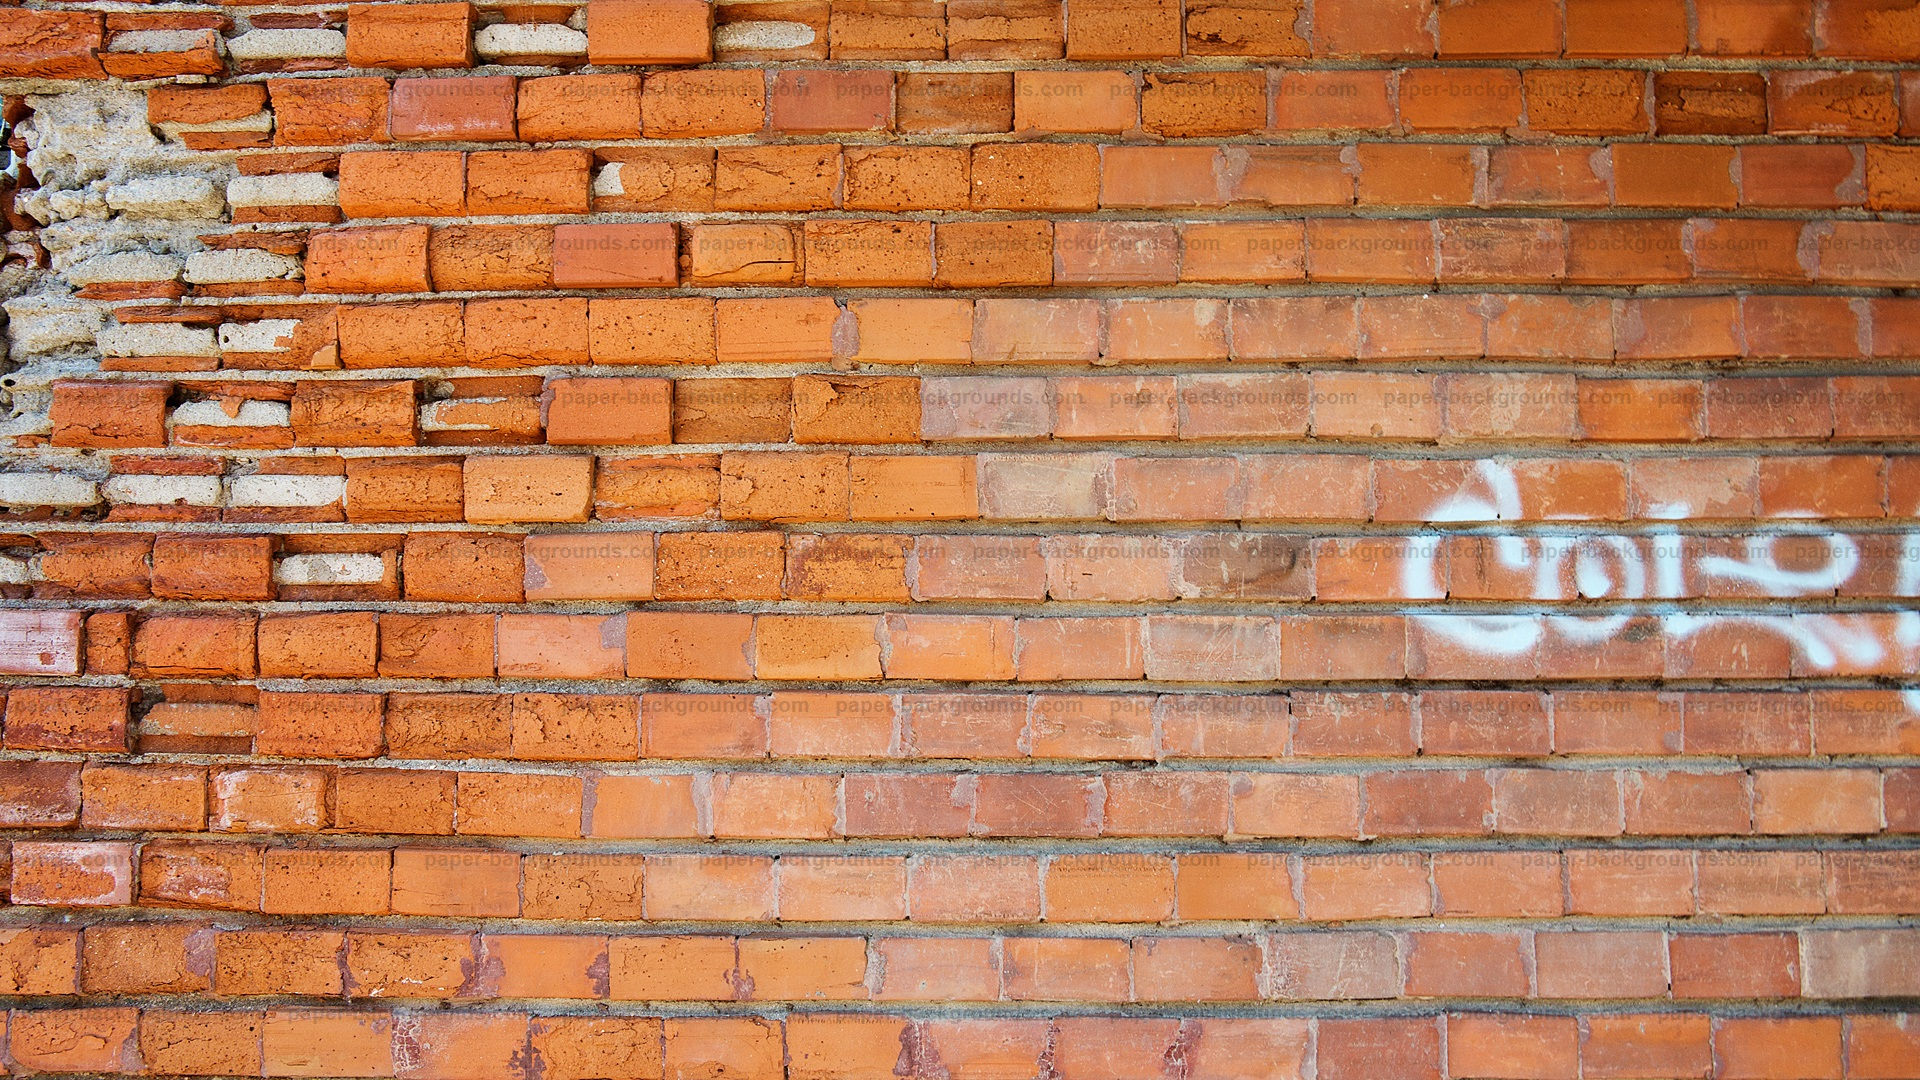 Brick wall hd wallpaper 674746 - Wallpaper for walls images ...